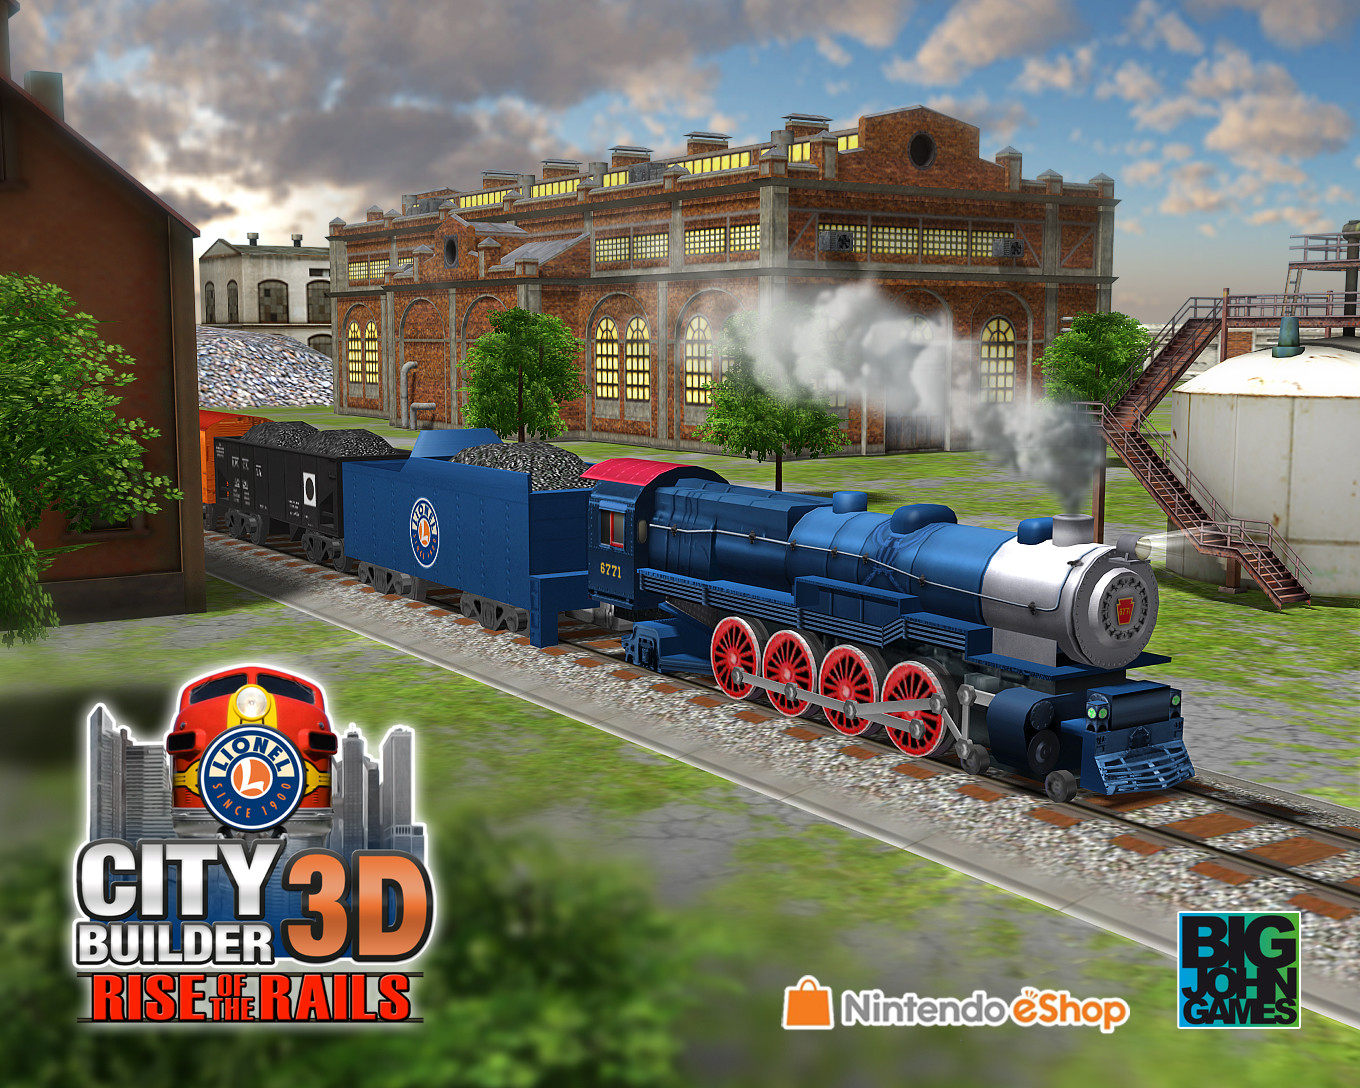 3D Ultra Lionel Traintown is a 3rd person railroading game by Sierra On-Line under their casual game brand Sierra Attractions, licensed by Lionel Corporation. It consists of train .